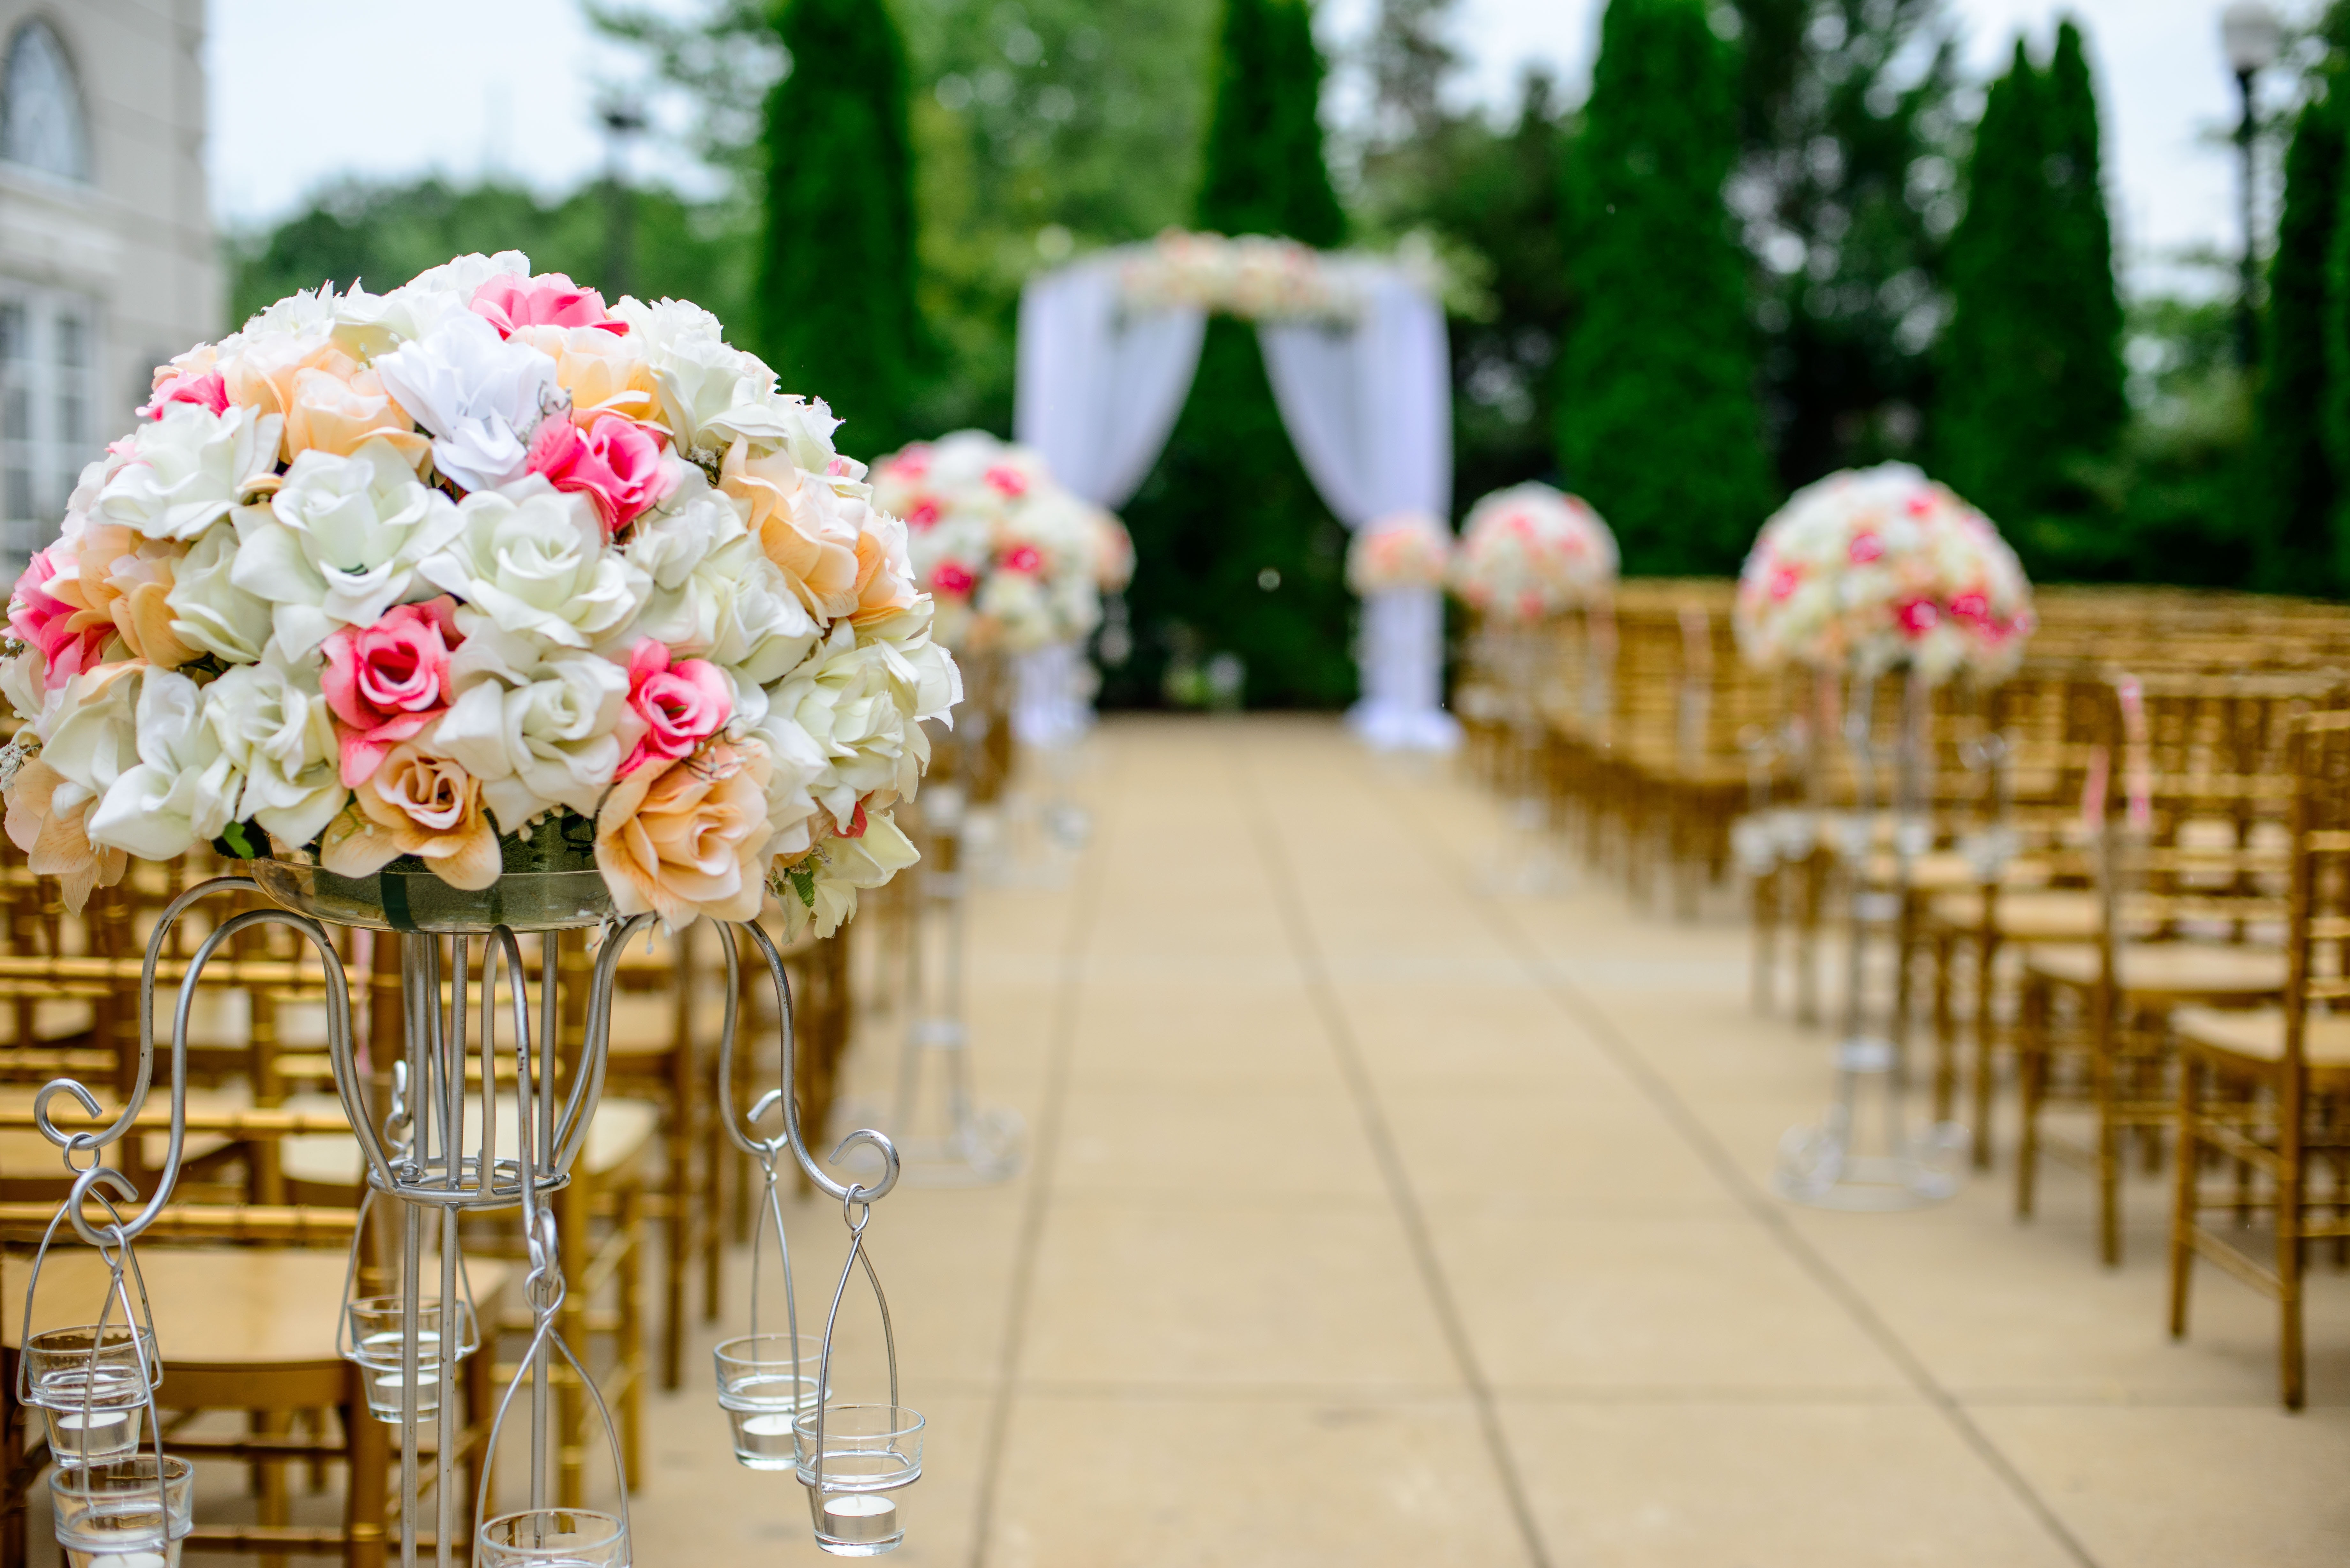 How to Get Wedding Bookings in 2021